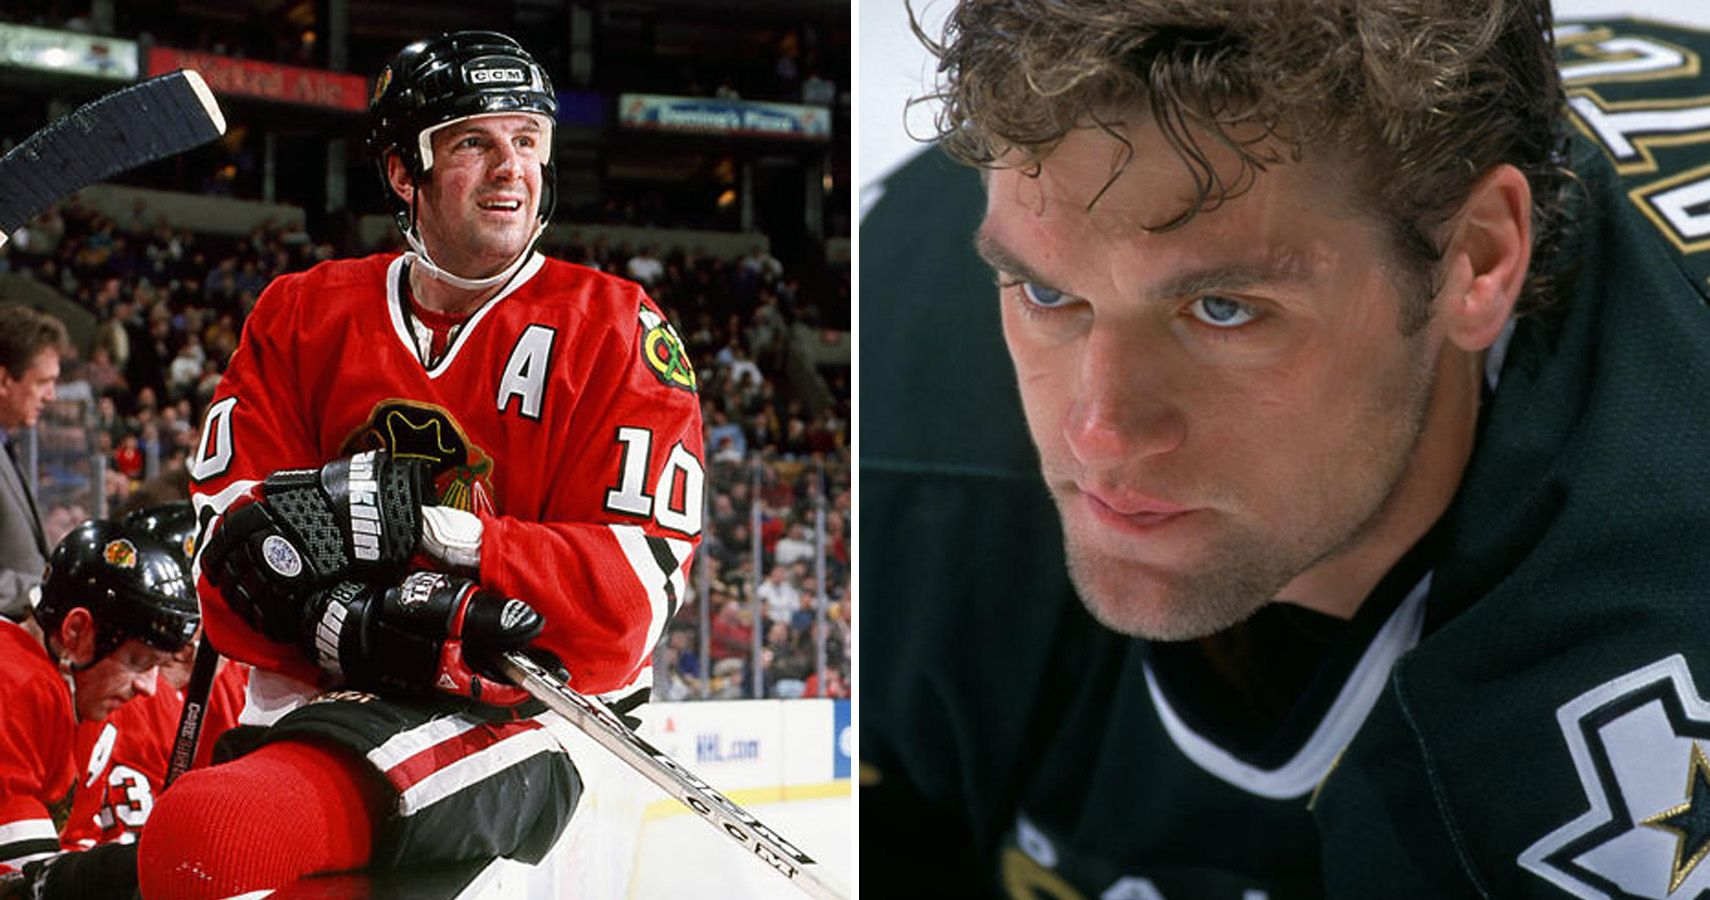 15 NHL Players Of The Y2K Era You Probably Don't Remember